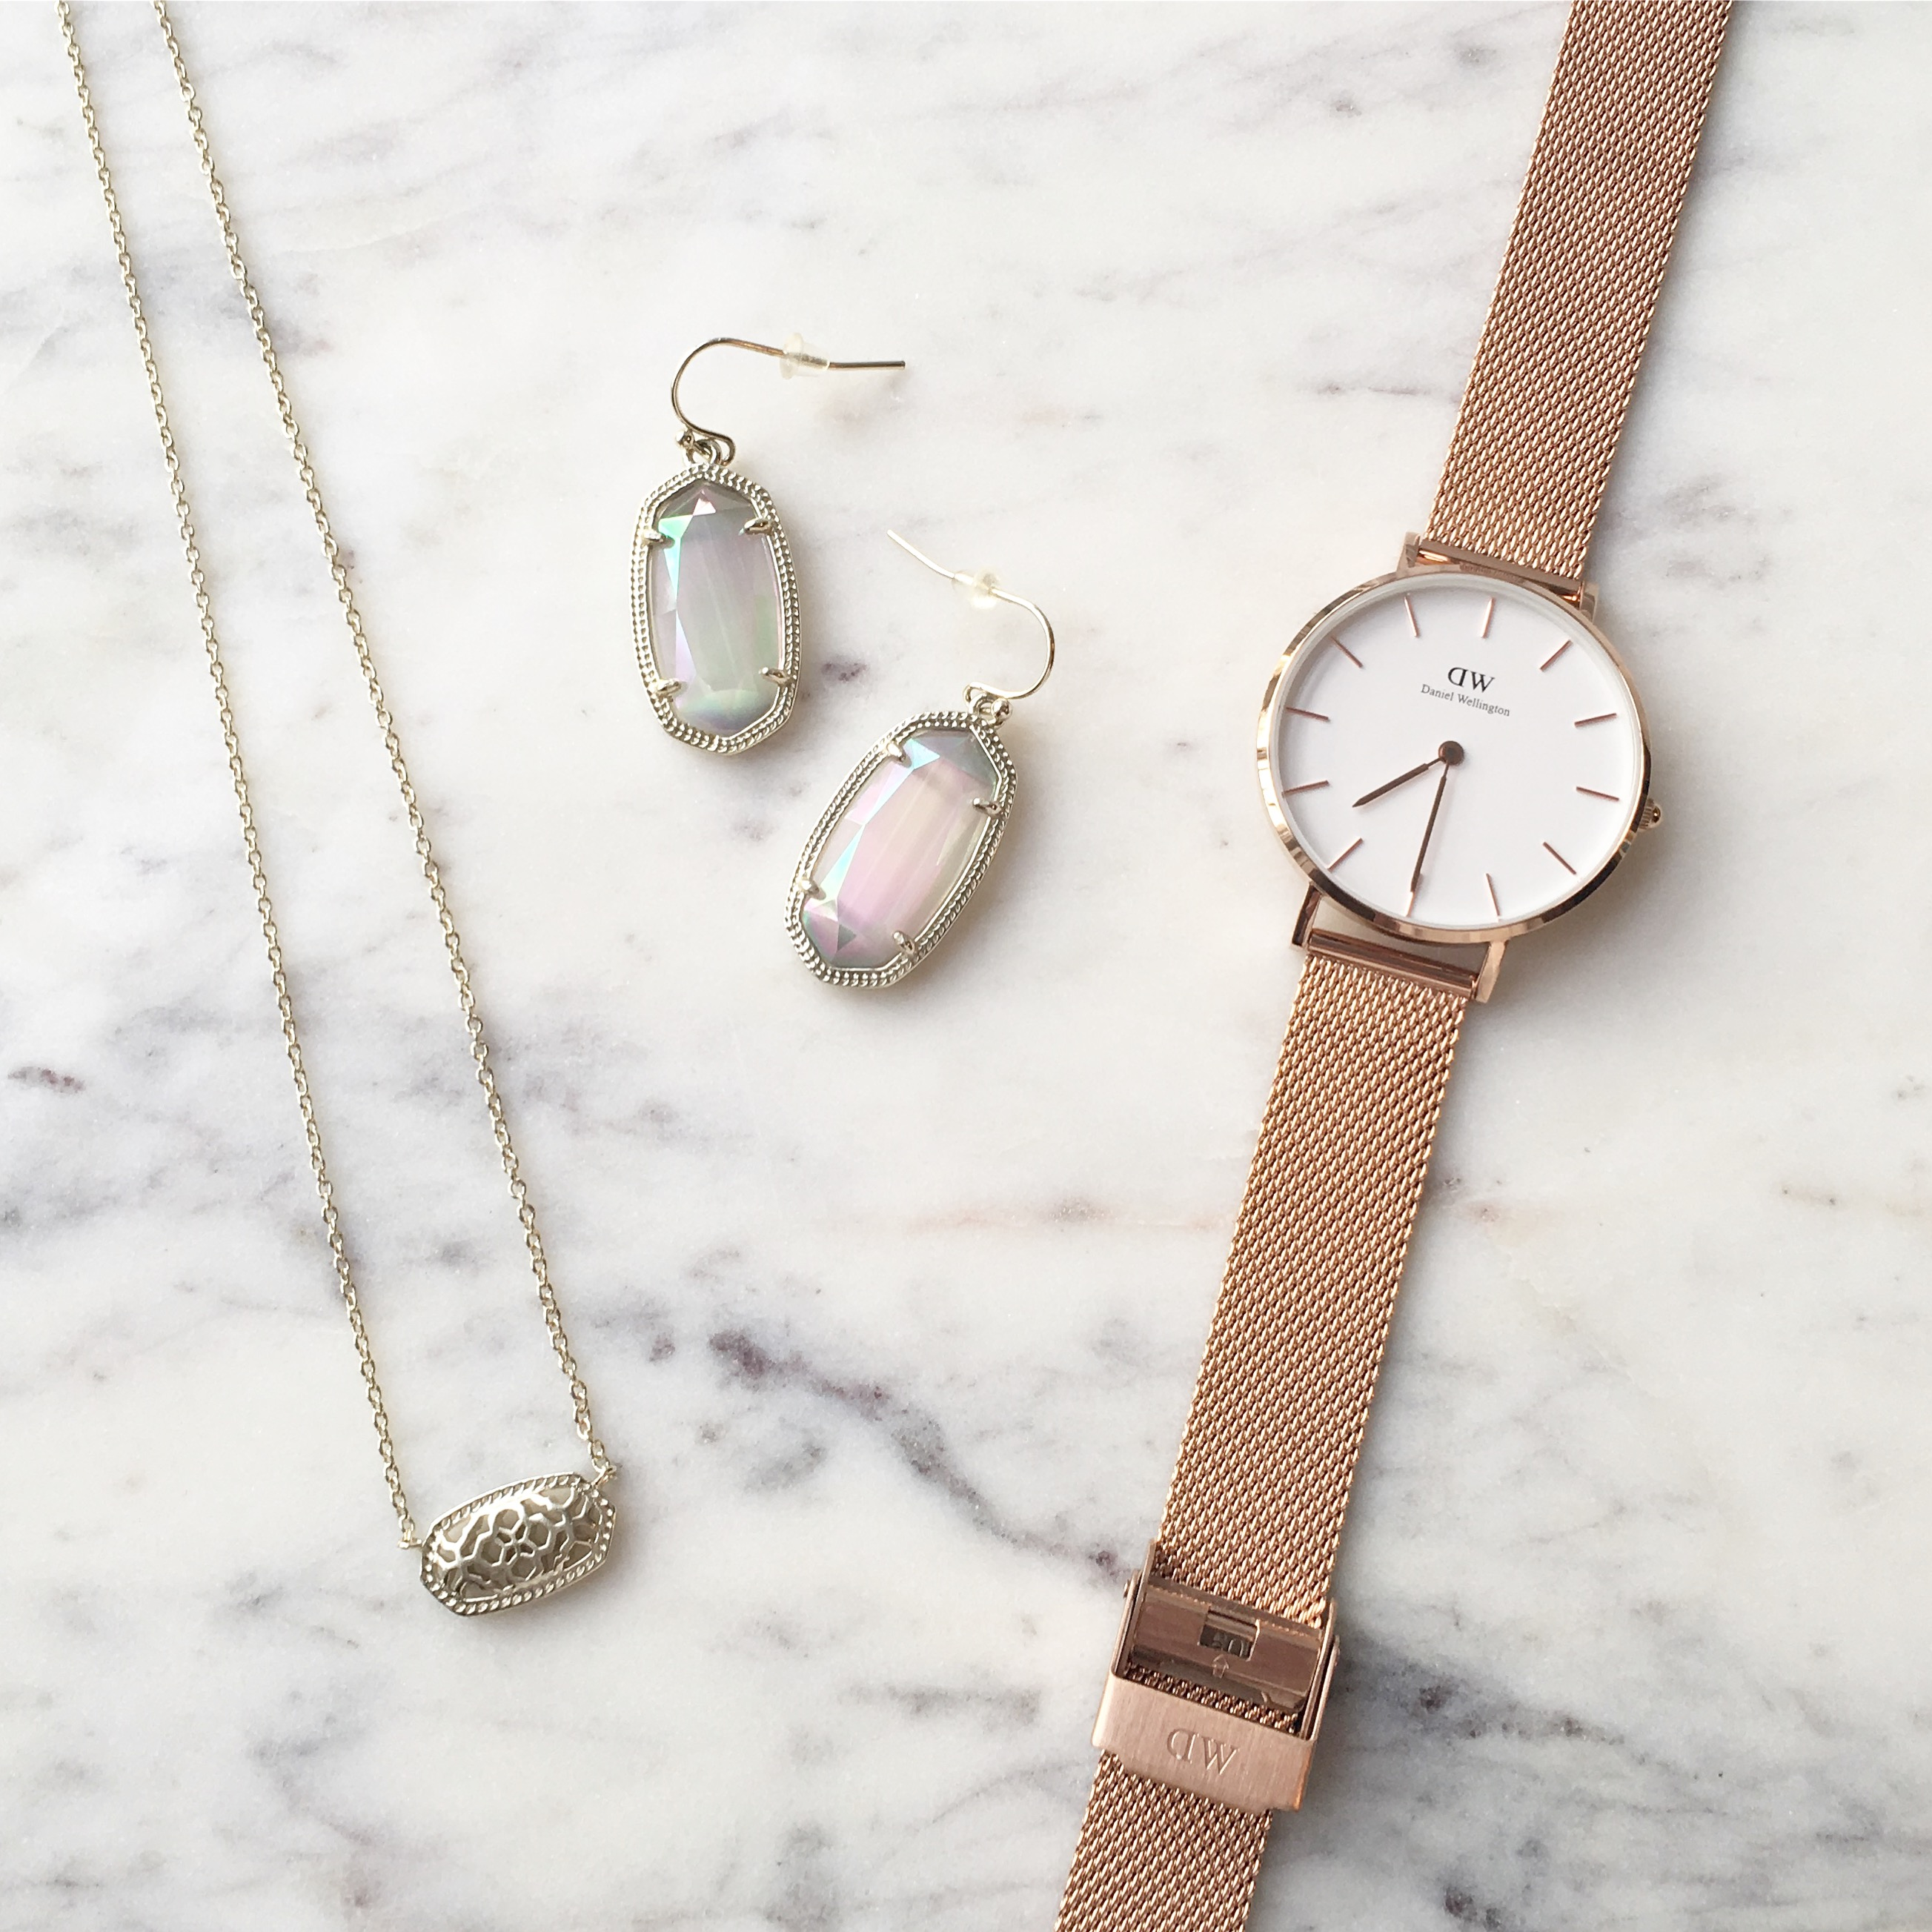 Daniel wellington coupon codes december best online daniel wellington coupon codes and promo codes in december are updated and verified.